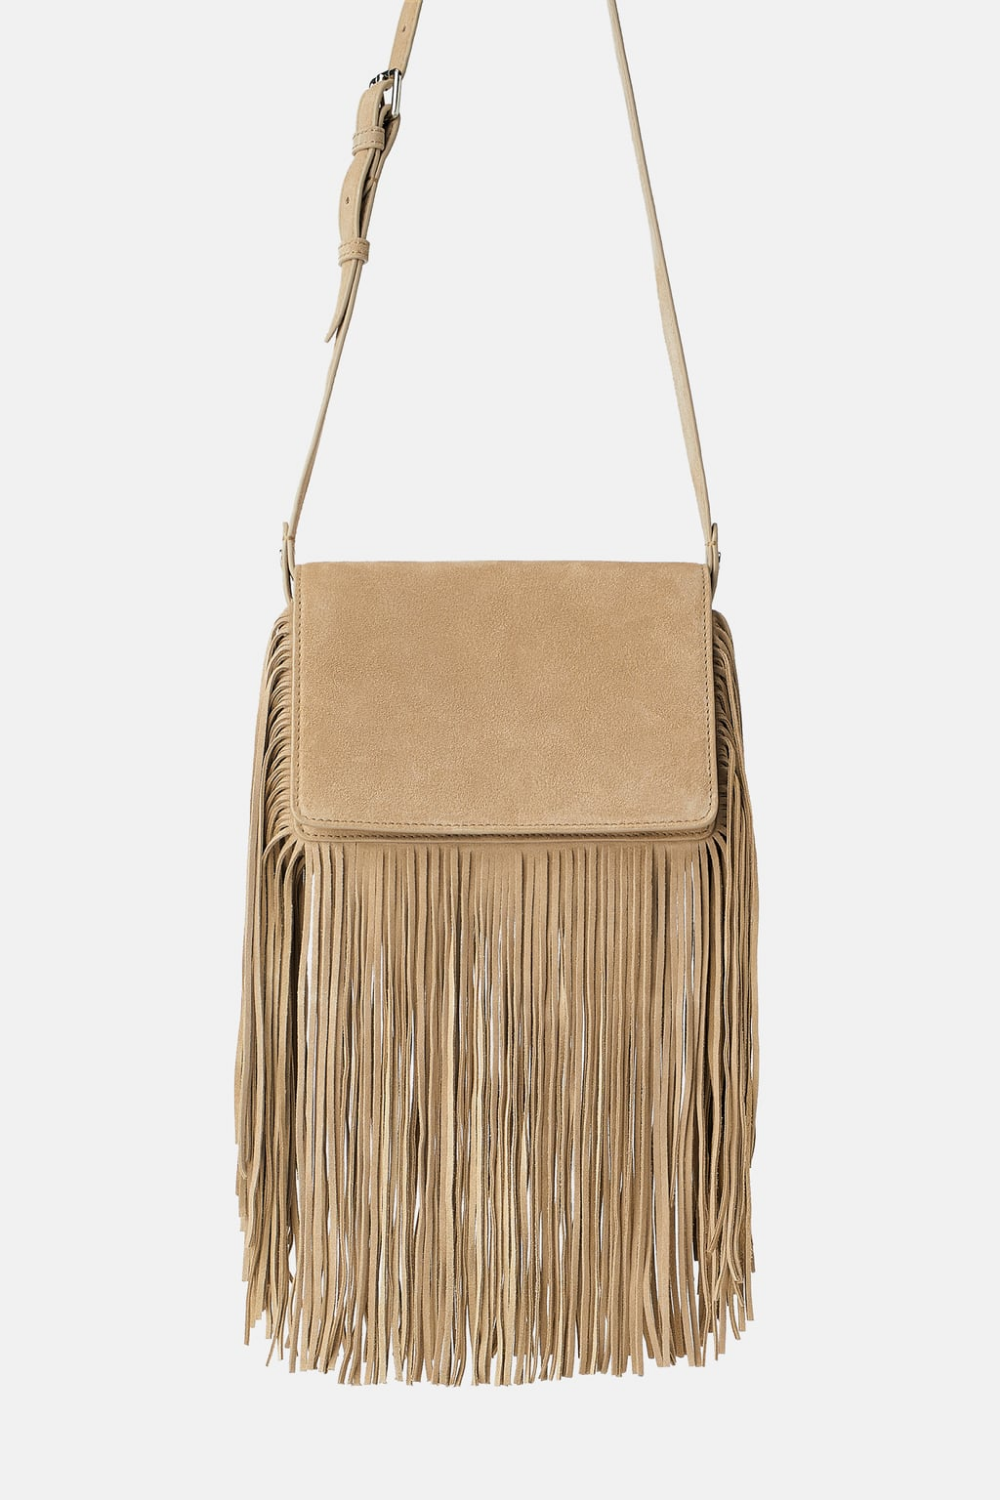 Split Leather Fringed Crossbody Bag Bags Woman New Collection Zara United States Leather Fringe Fringe Crossbody Bag Fringe Crossbody